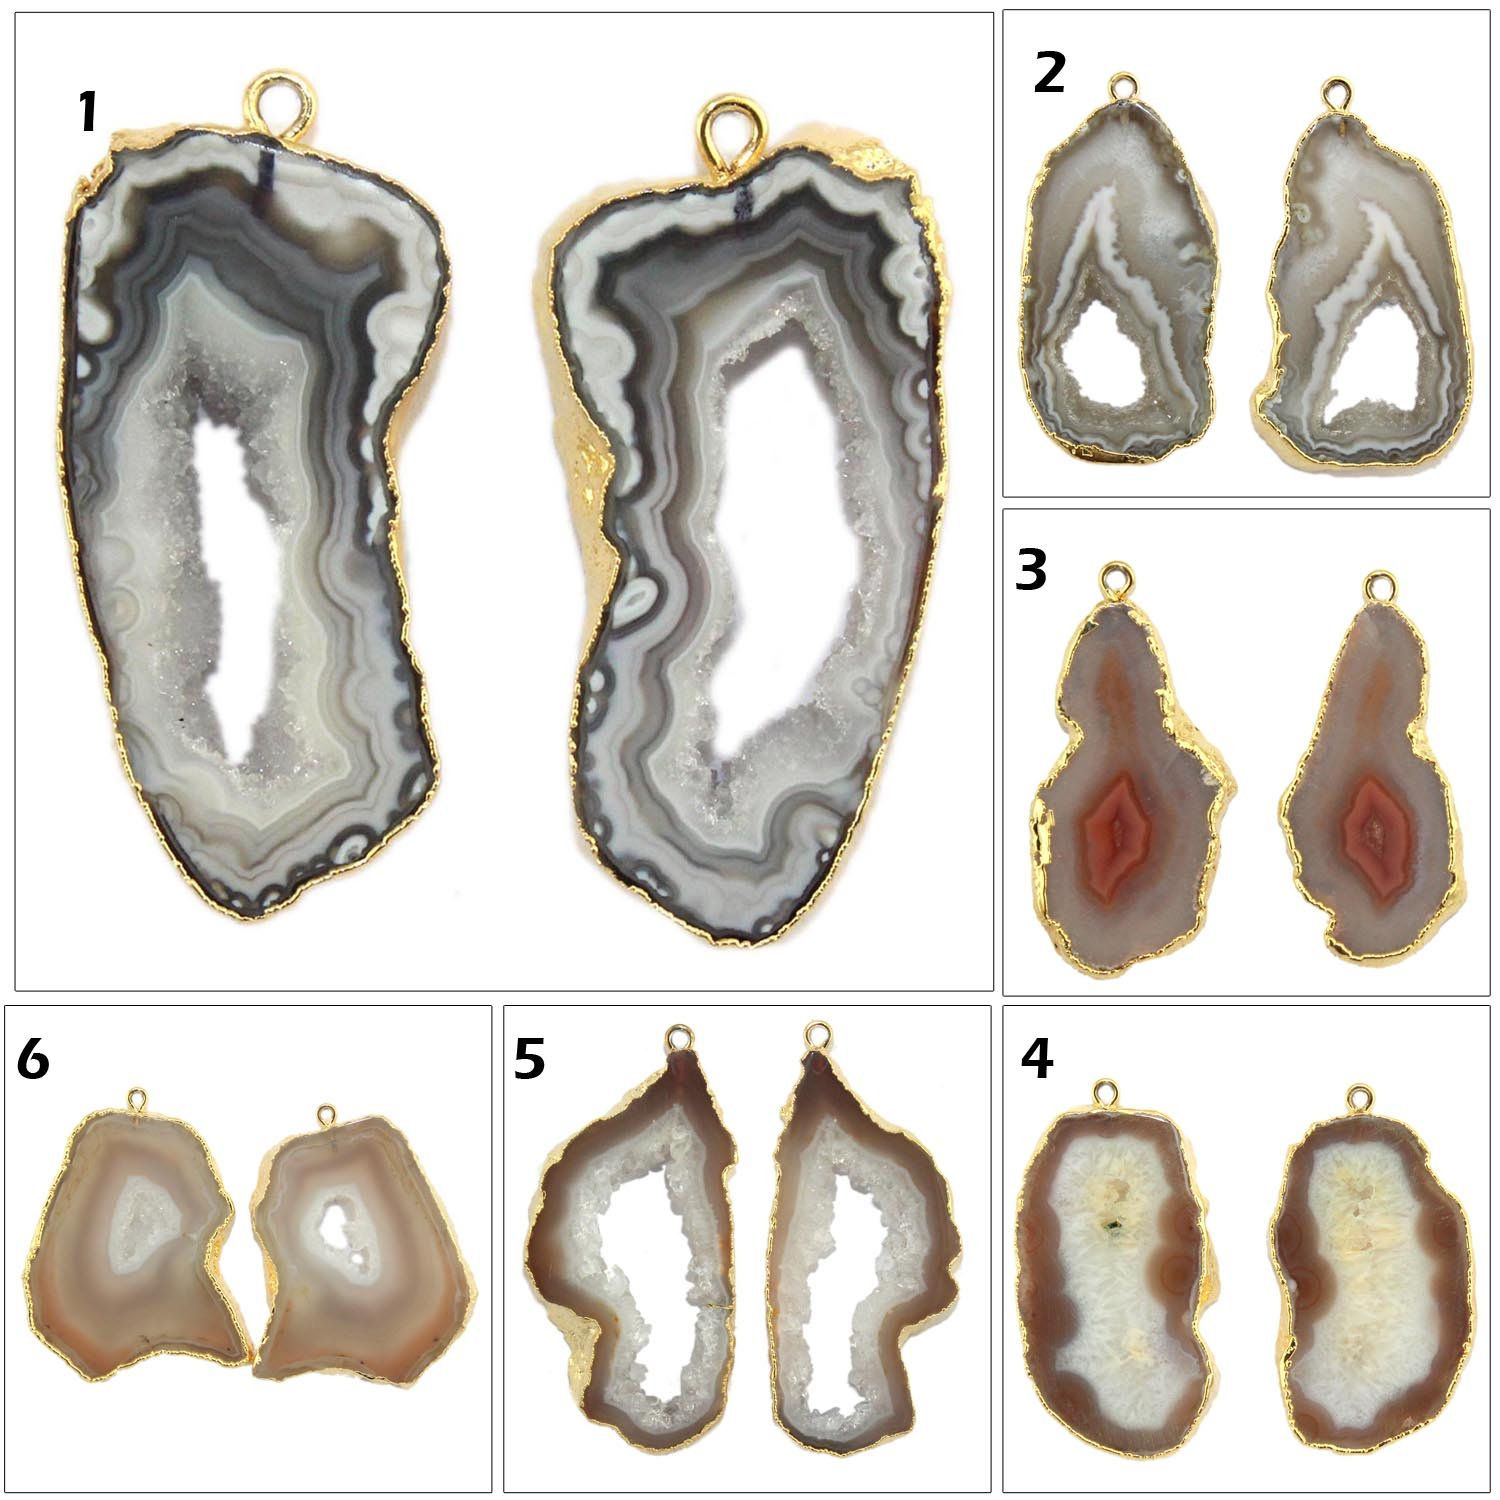 Rare Natural Geode Agate Slice Druzy Silver Electroplated Connectors Pairs For Making Earrings Gemstone Geode Connector Making DIY Jewelry